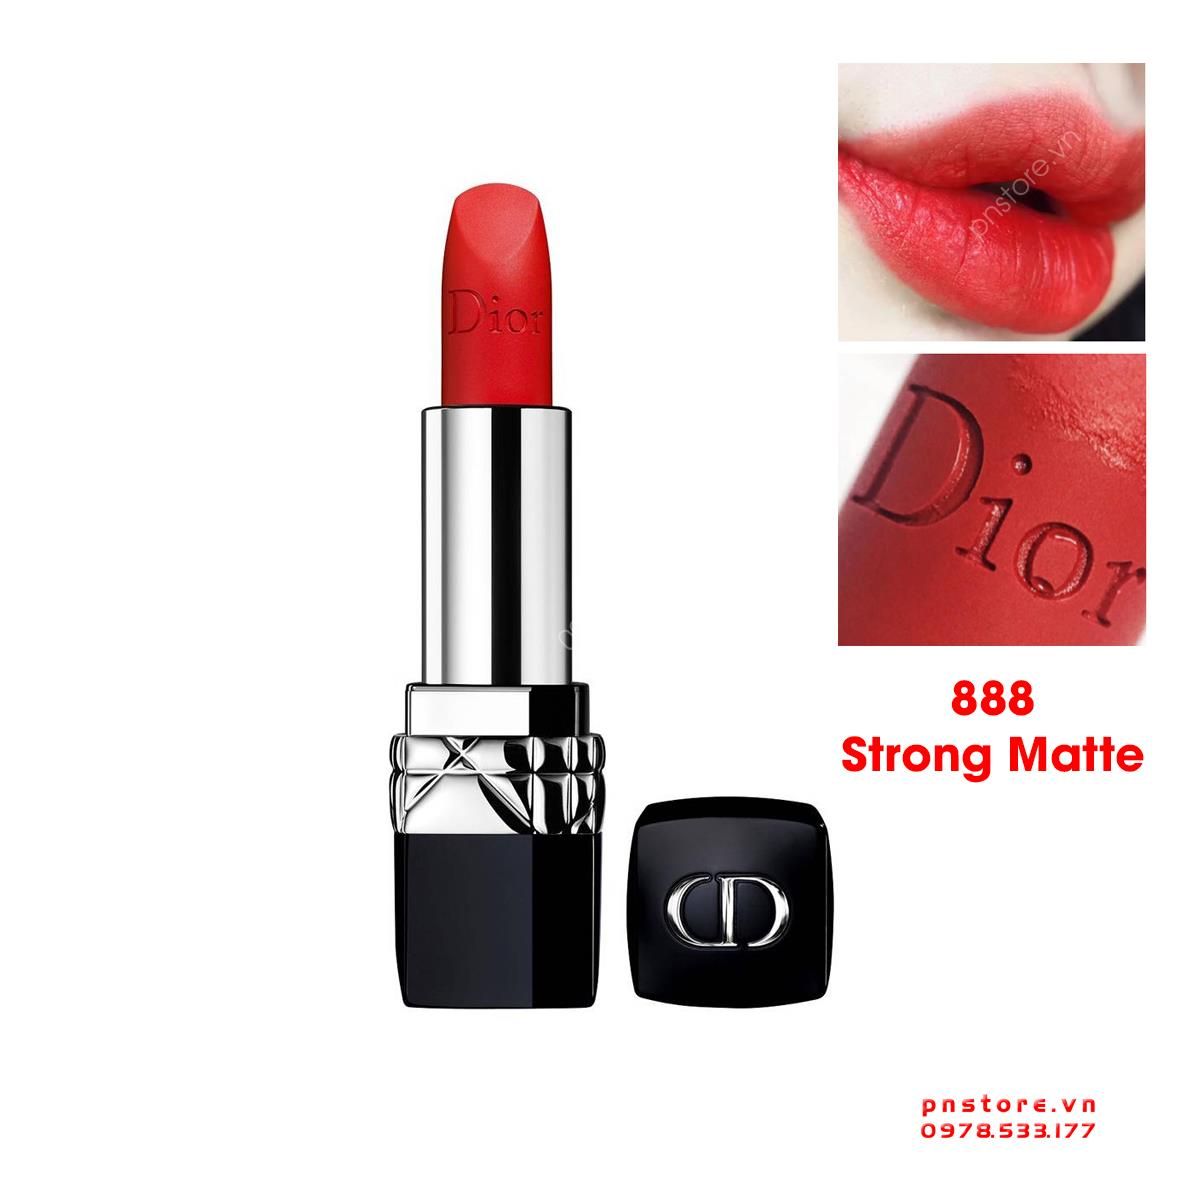 son-dior-888-strong-matte-mau-do-cam-chinh-hang-phap-vo-den-pn102039